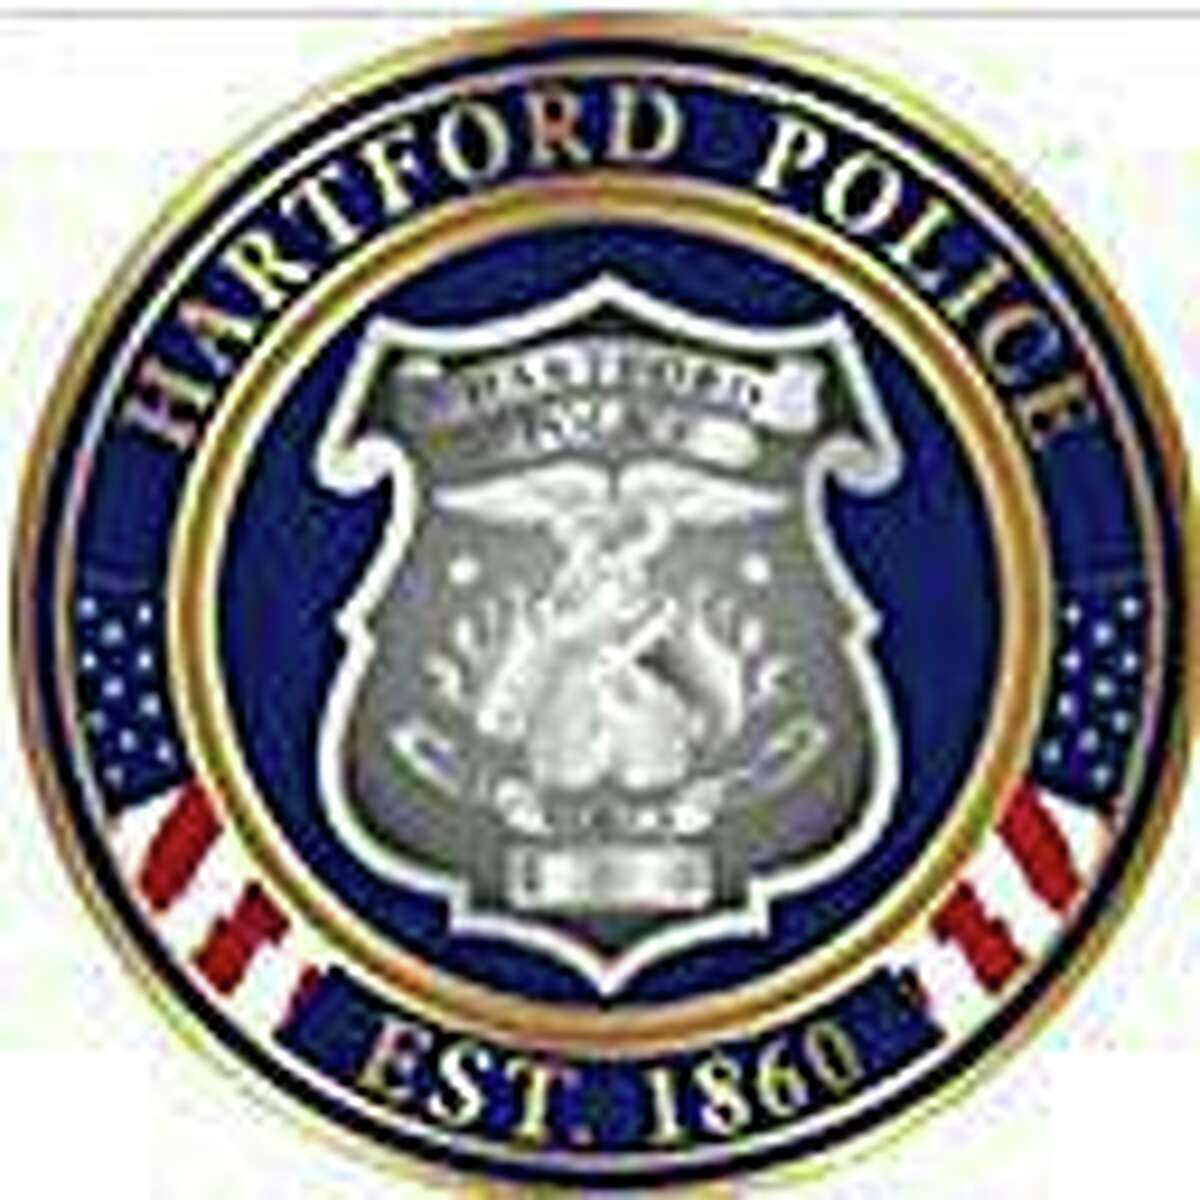 Harford police are investigating shots being fired in the Parkville neighborhood area on Friday, Sept. 11, 2020.